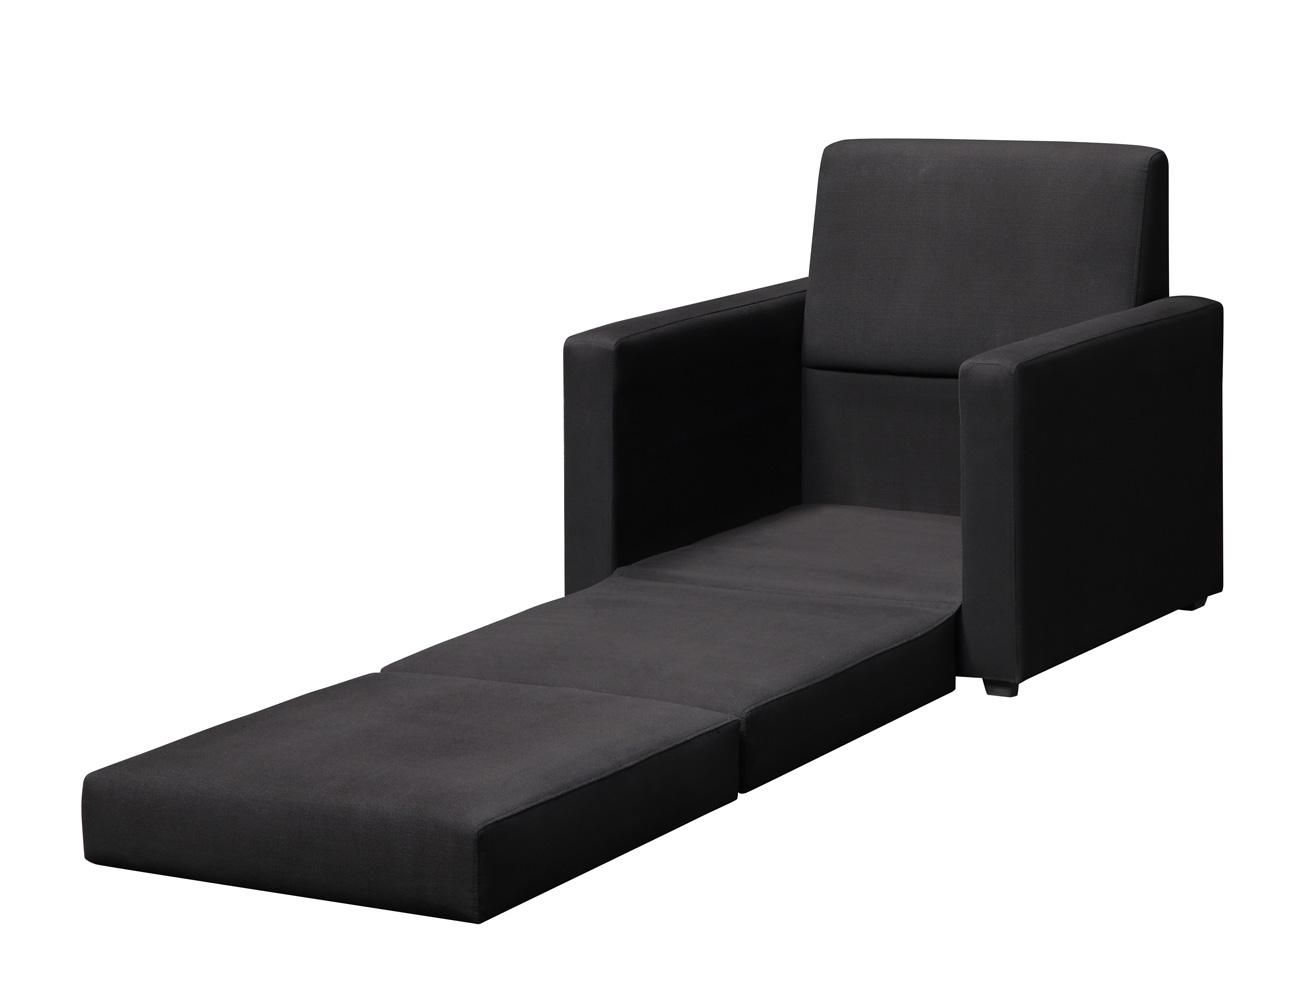 High Quality Sculpture Of Single Sleeper Chairs Showcasing A Cozy And Enjoyable Living  Room Space